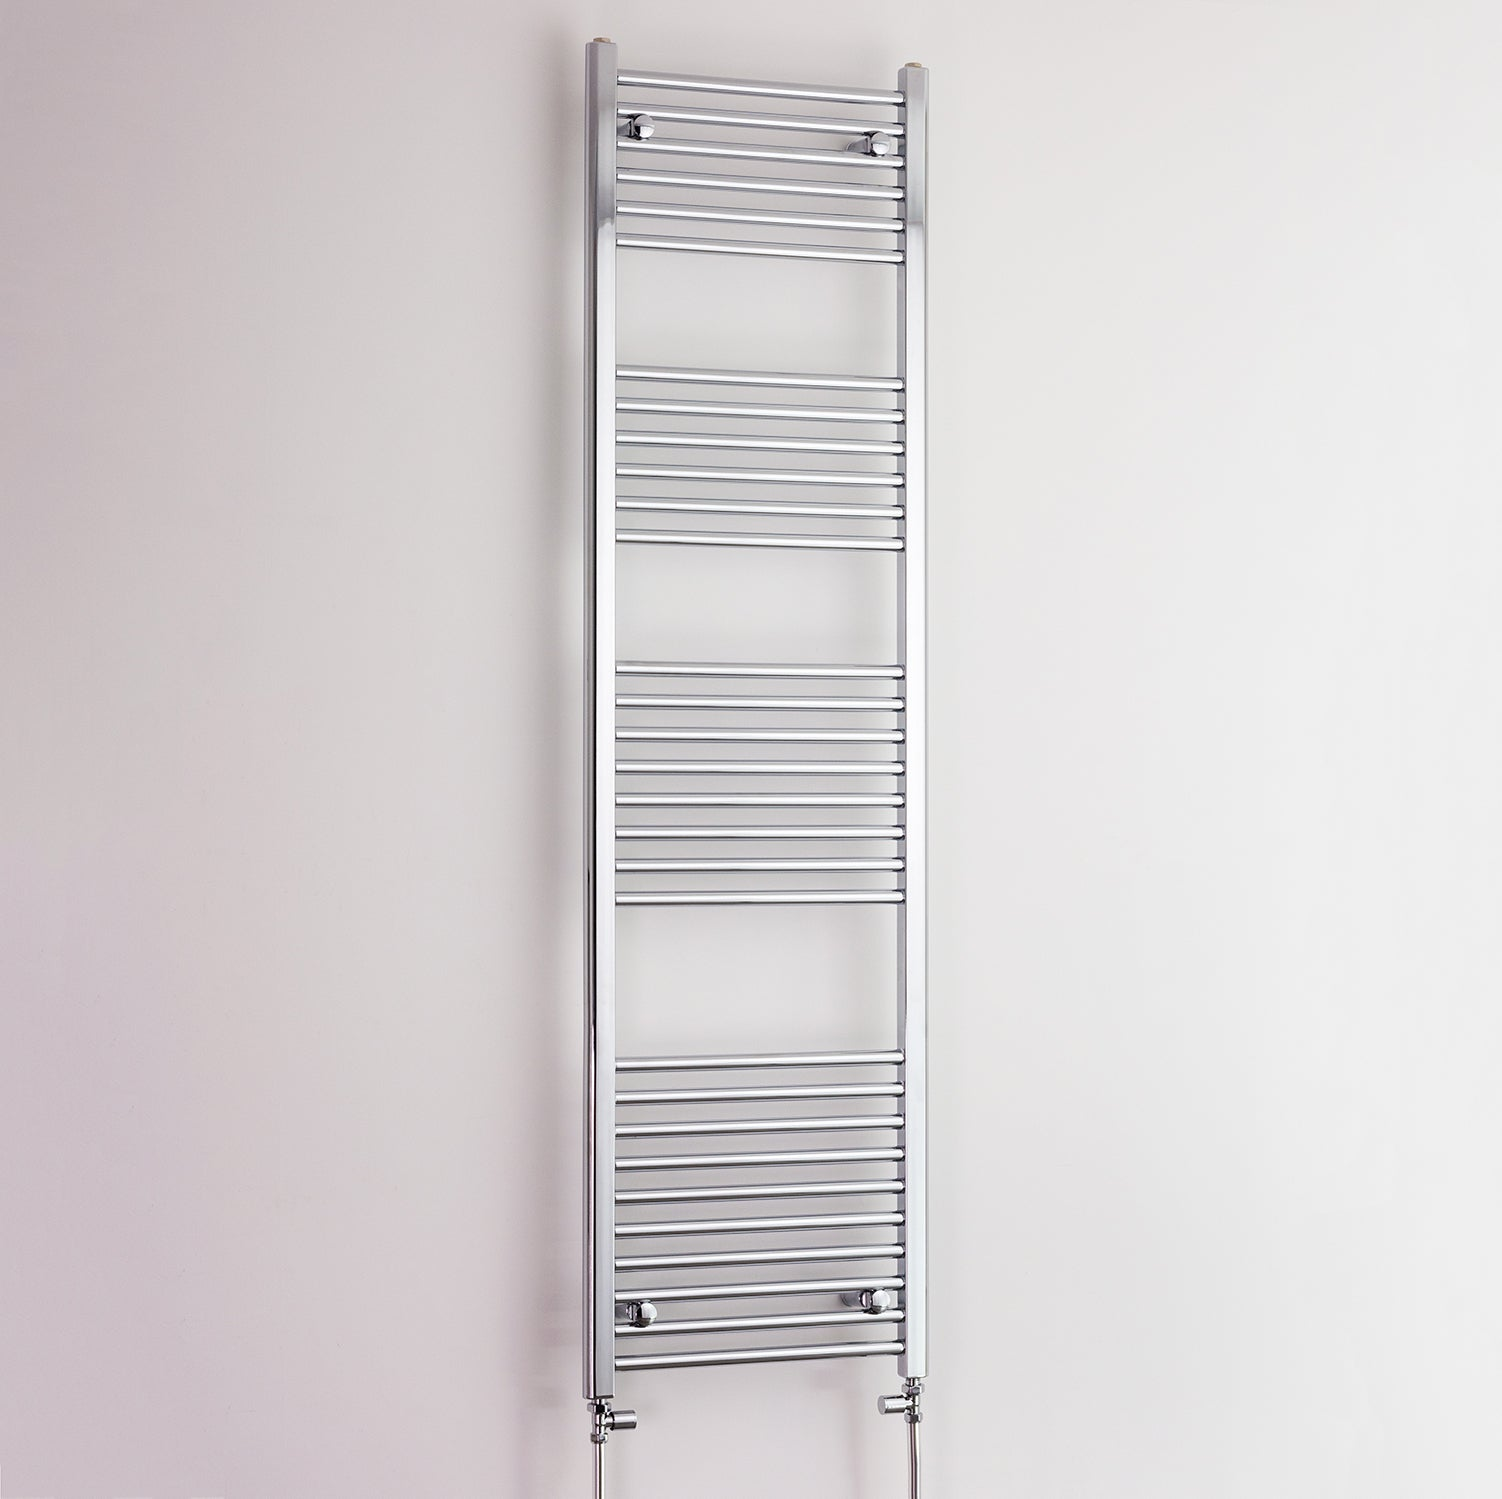 600mm Wide 1800mm High Curved Chrome Heated Towel Rail Radiator HTR,With Straight Valve